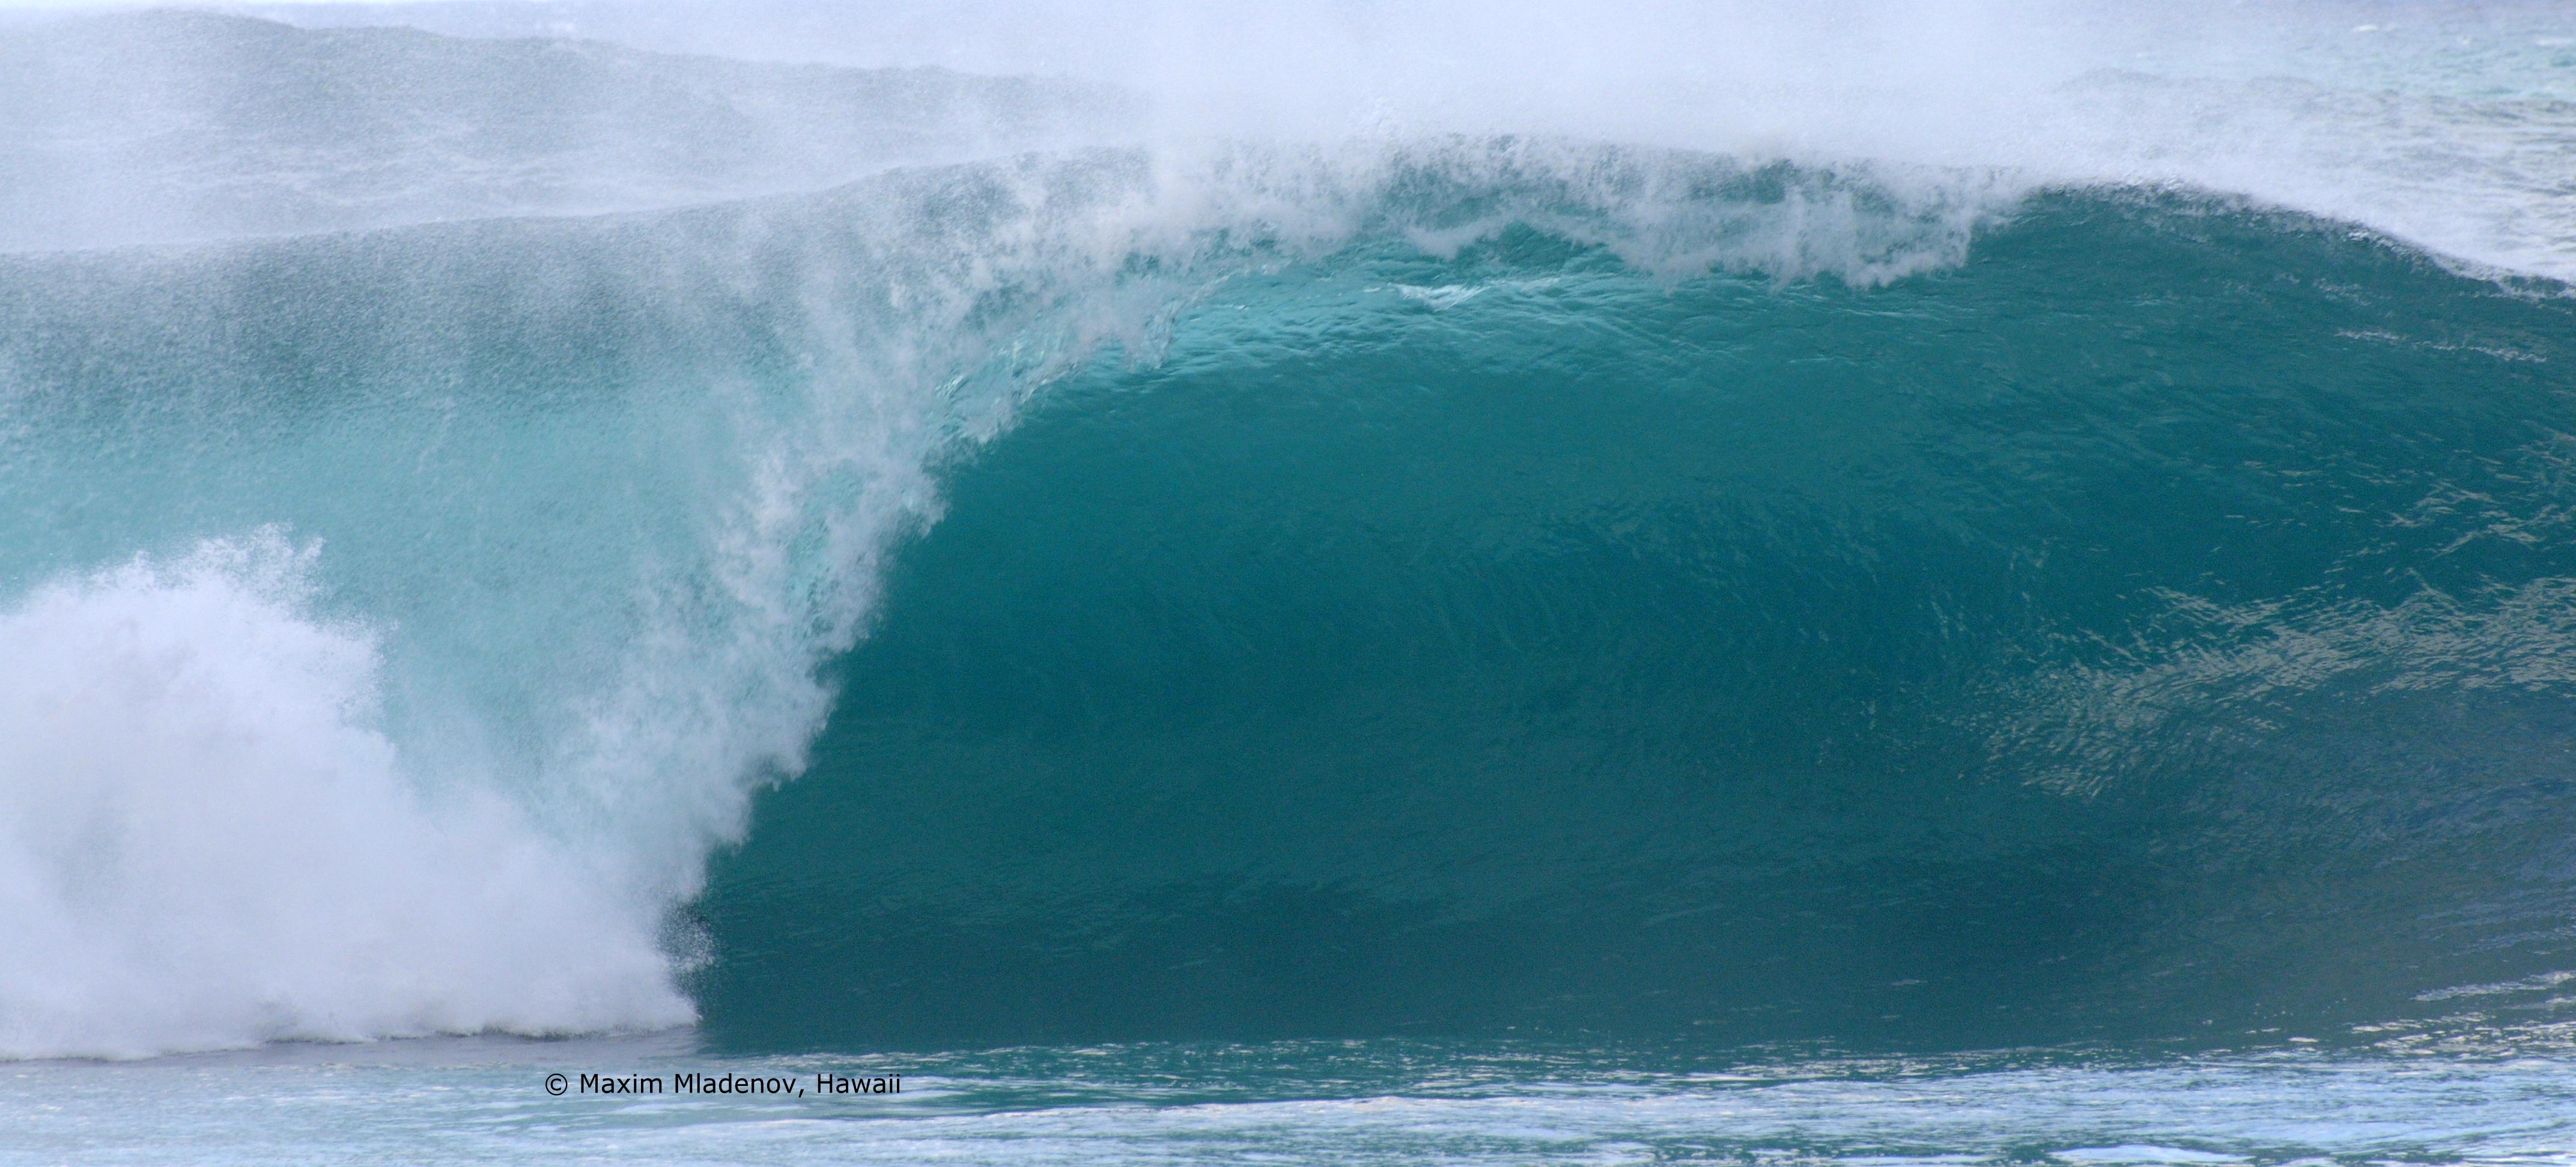 Sans commentaires -Sequ07-  1er Tour 08-12-2011 Billabong PIPE Masters © Maxim Mladenov, Hawaii